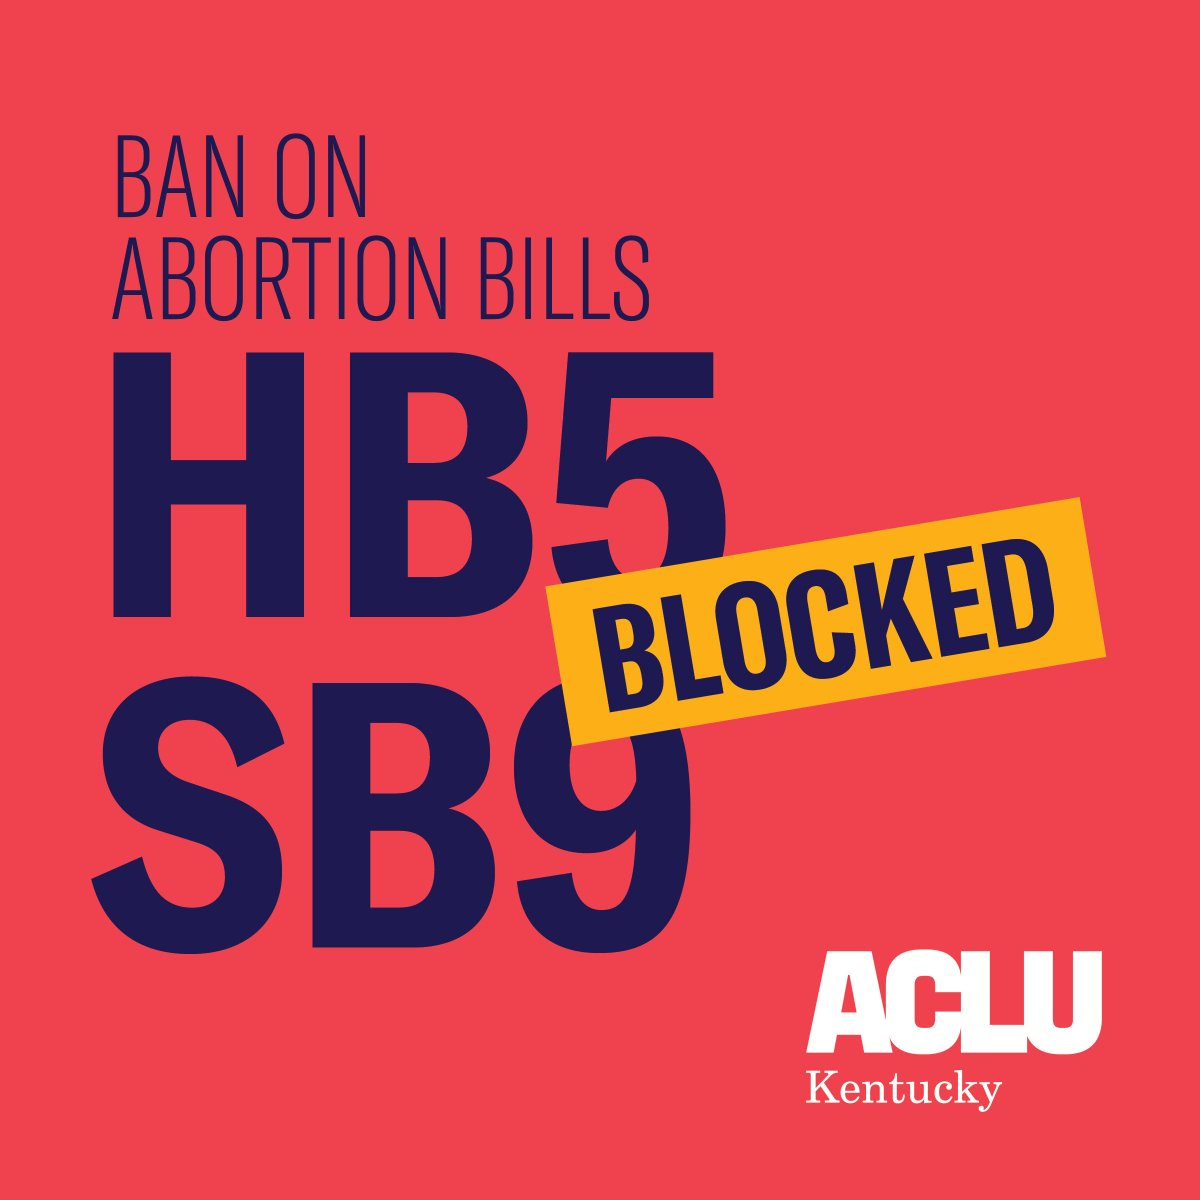 As abortion bans sweep the nation, we've been back in the national/international spotlight.  Reminder, Kentucky's most recent attempts to ban abortion are BLOCKED indefinitely while we litigate. #HB5Blocked #SB9Blocked #stopthebans